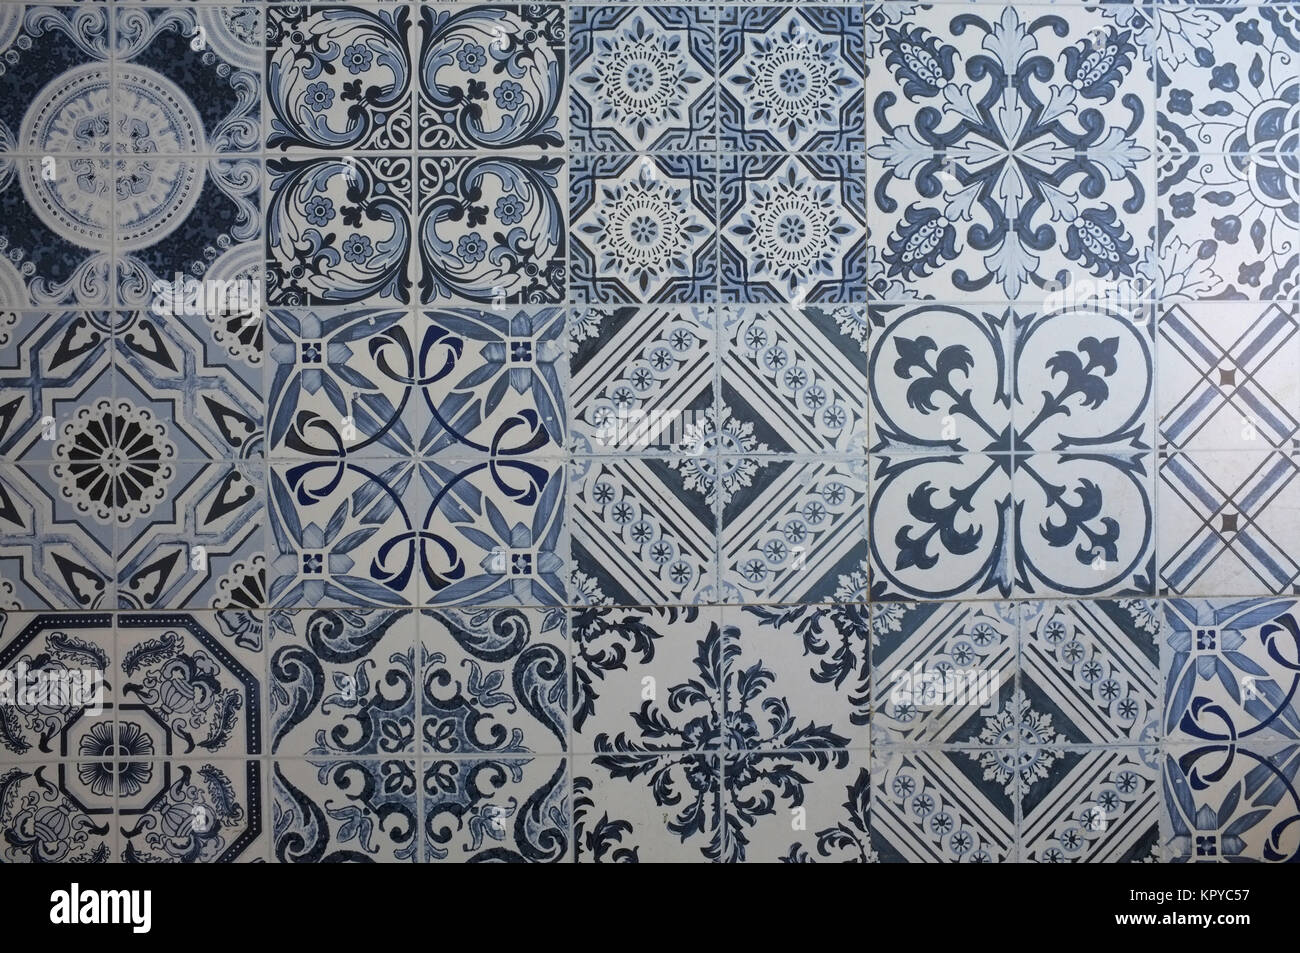 Traditional Morocco Ceramic Tiles Stock Photos & Traditional Morocco ...